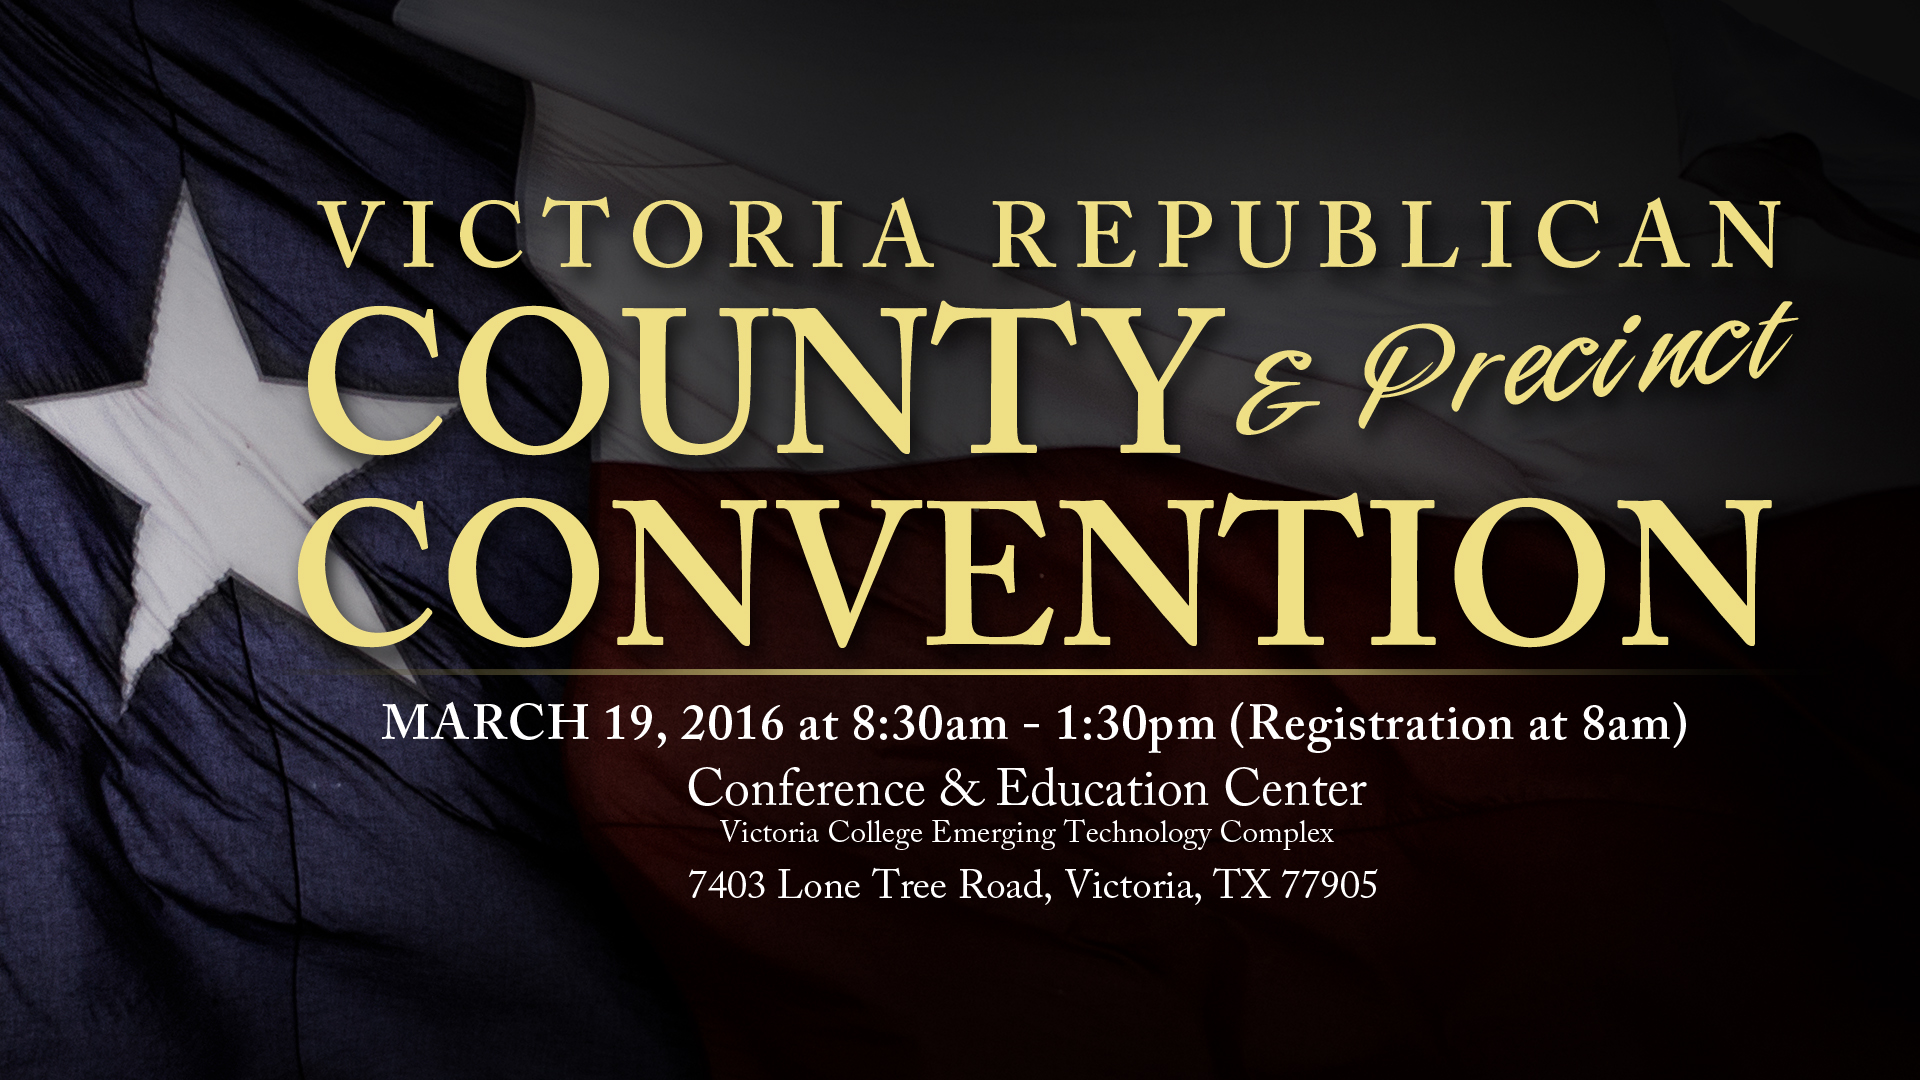 County_Convention_facebook_event_image.jpg